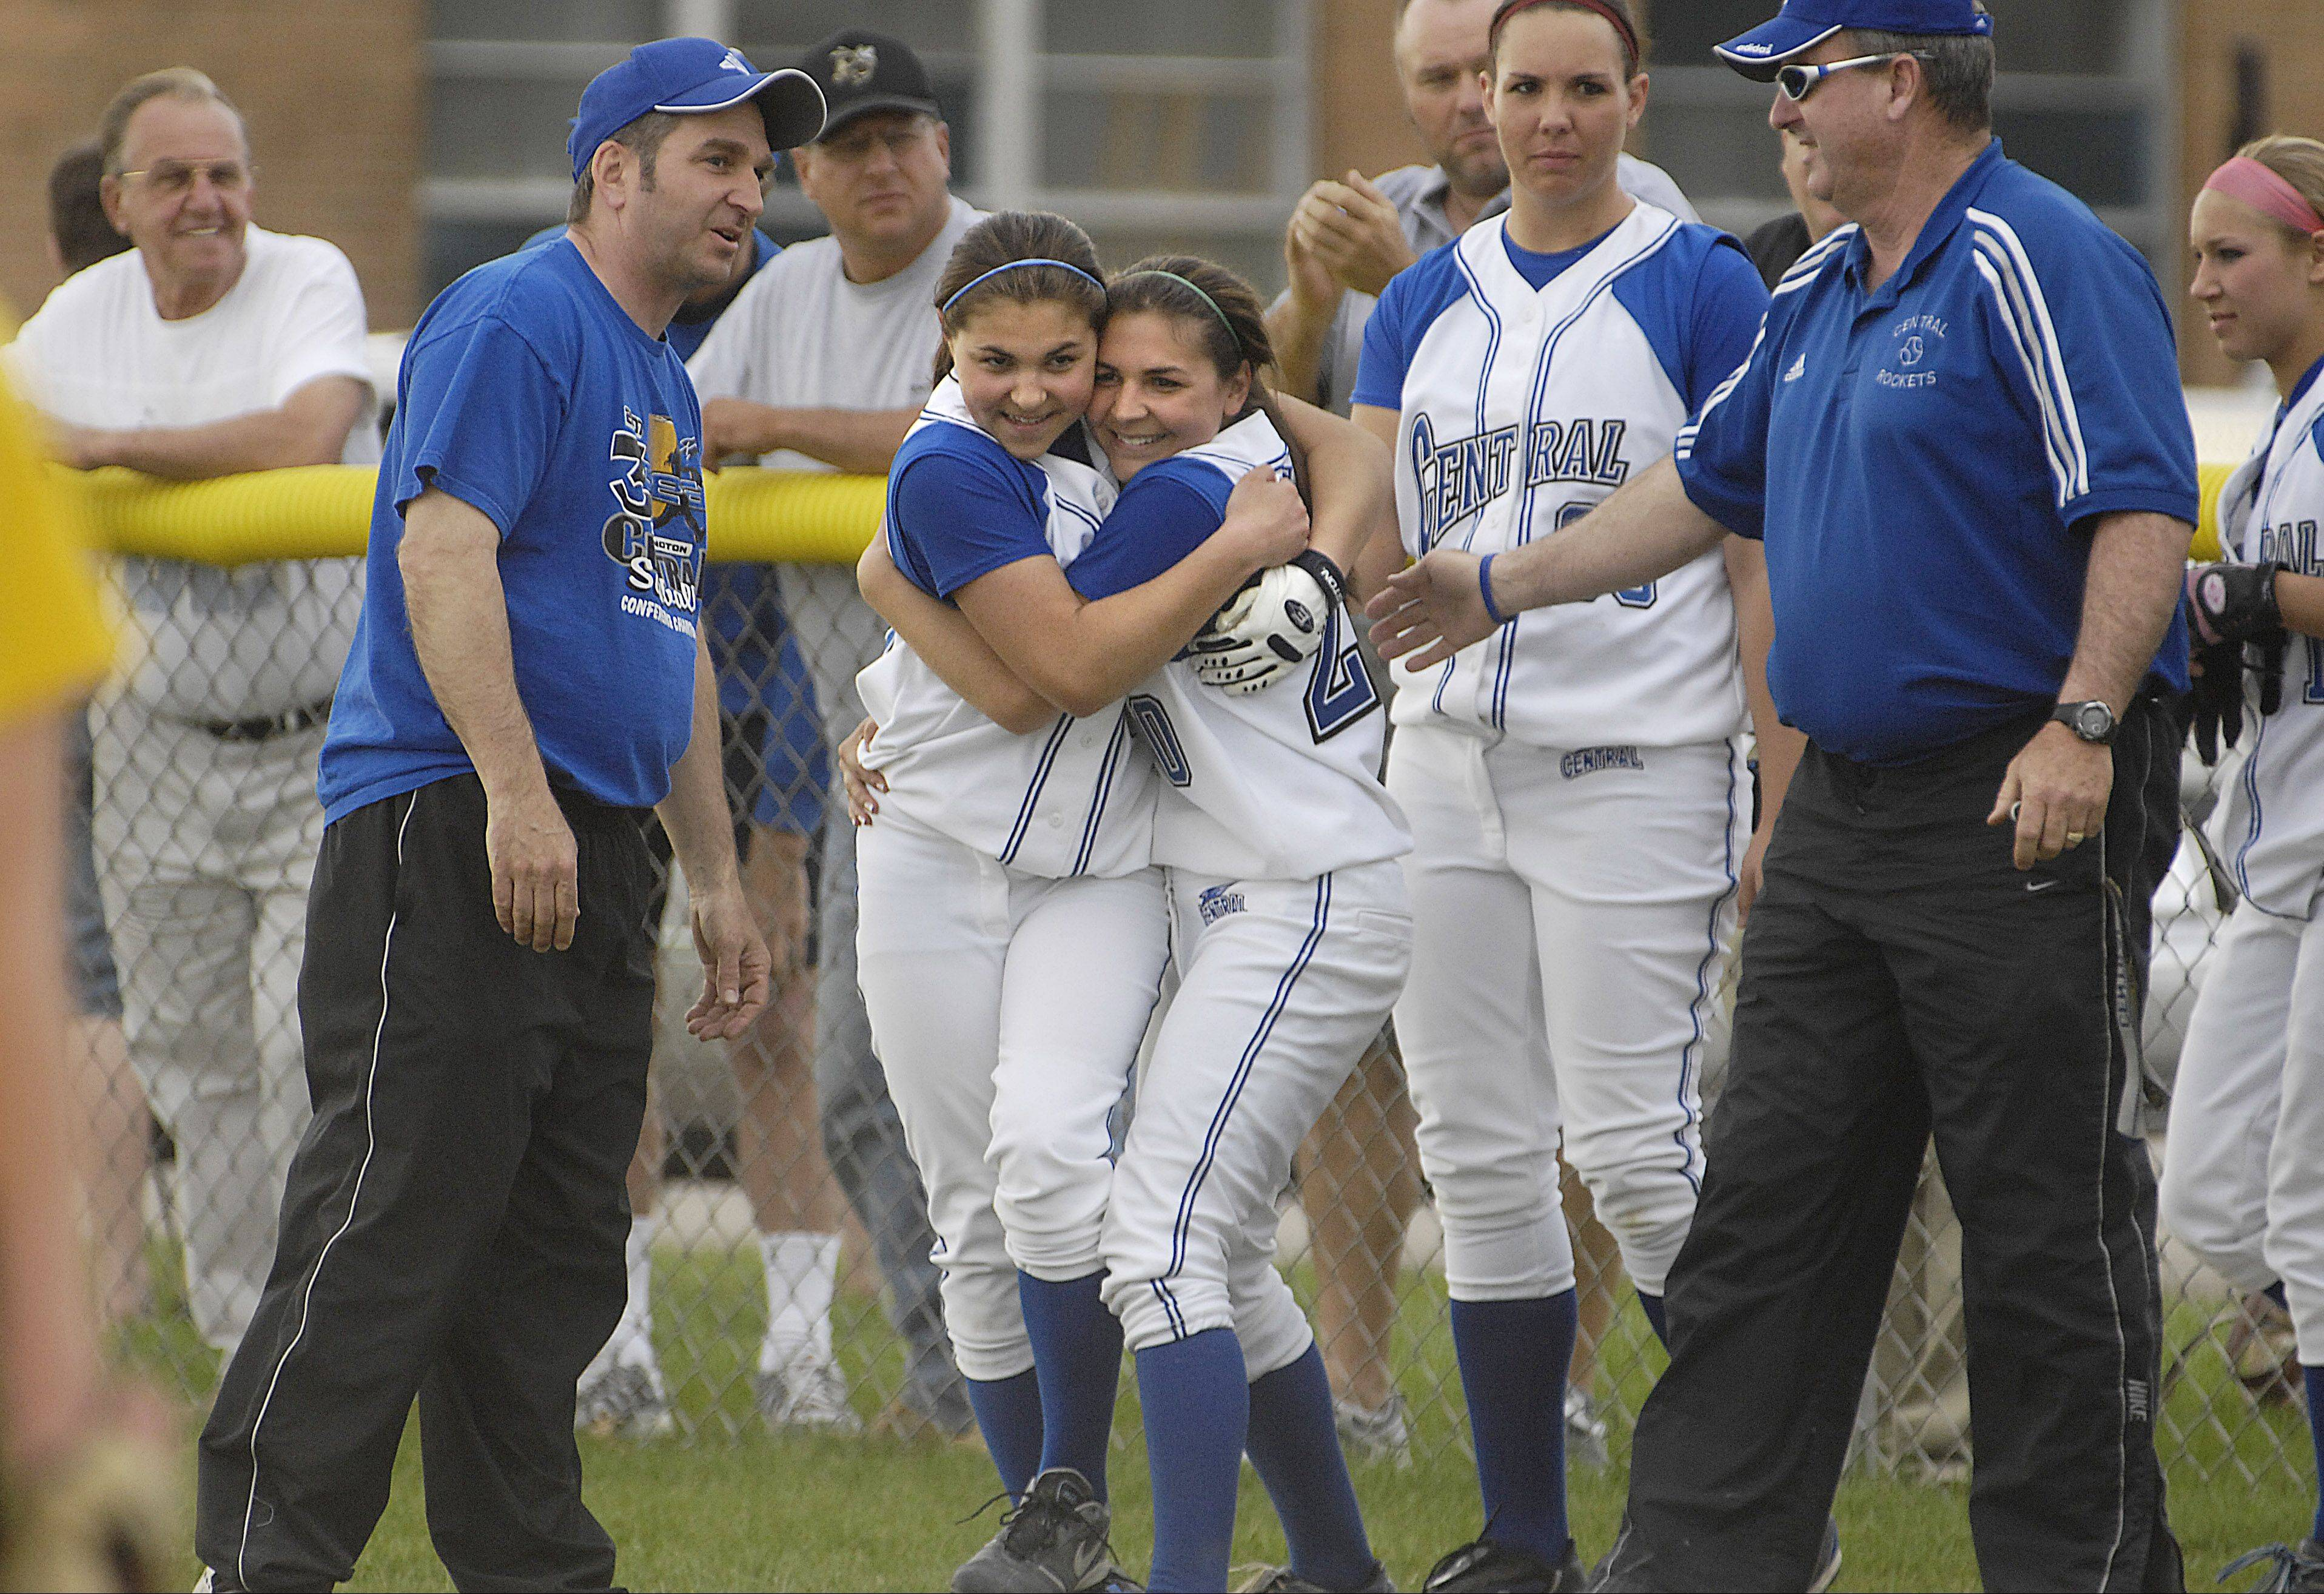 Erica Maisto, right, is hugged by her sister Jordan after Erica set the Burlington Central career pitching wins record in 2008. At far left is their dad, Wade, an assistant coach then who has now taken over the program again that he was head coach of from 1984-1998.